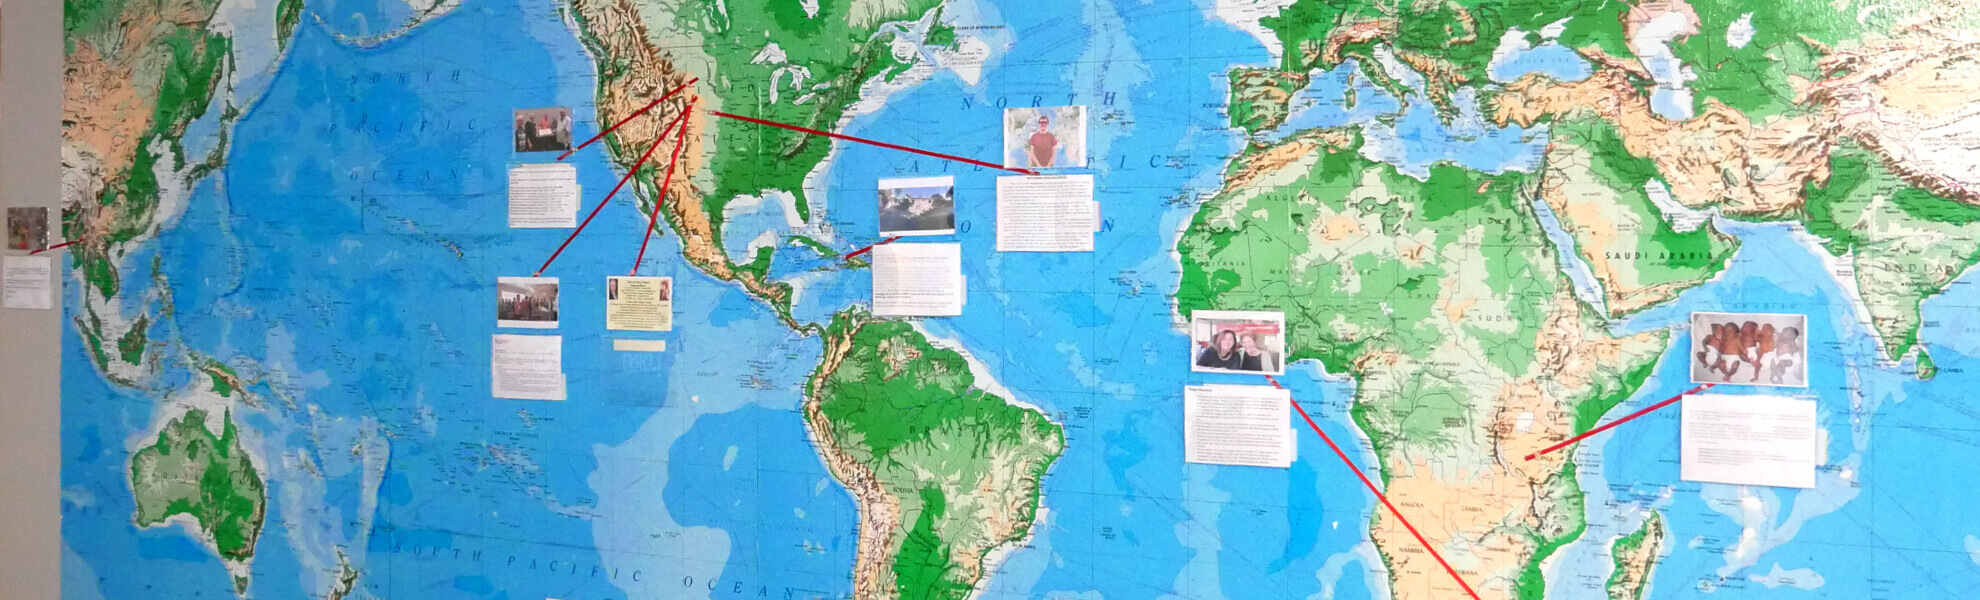 Map of the world with WestWay missions listed